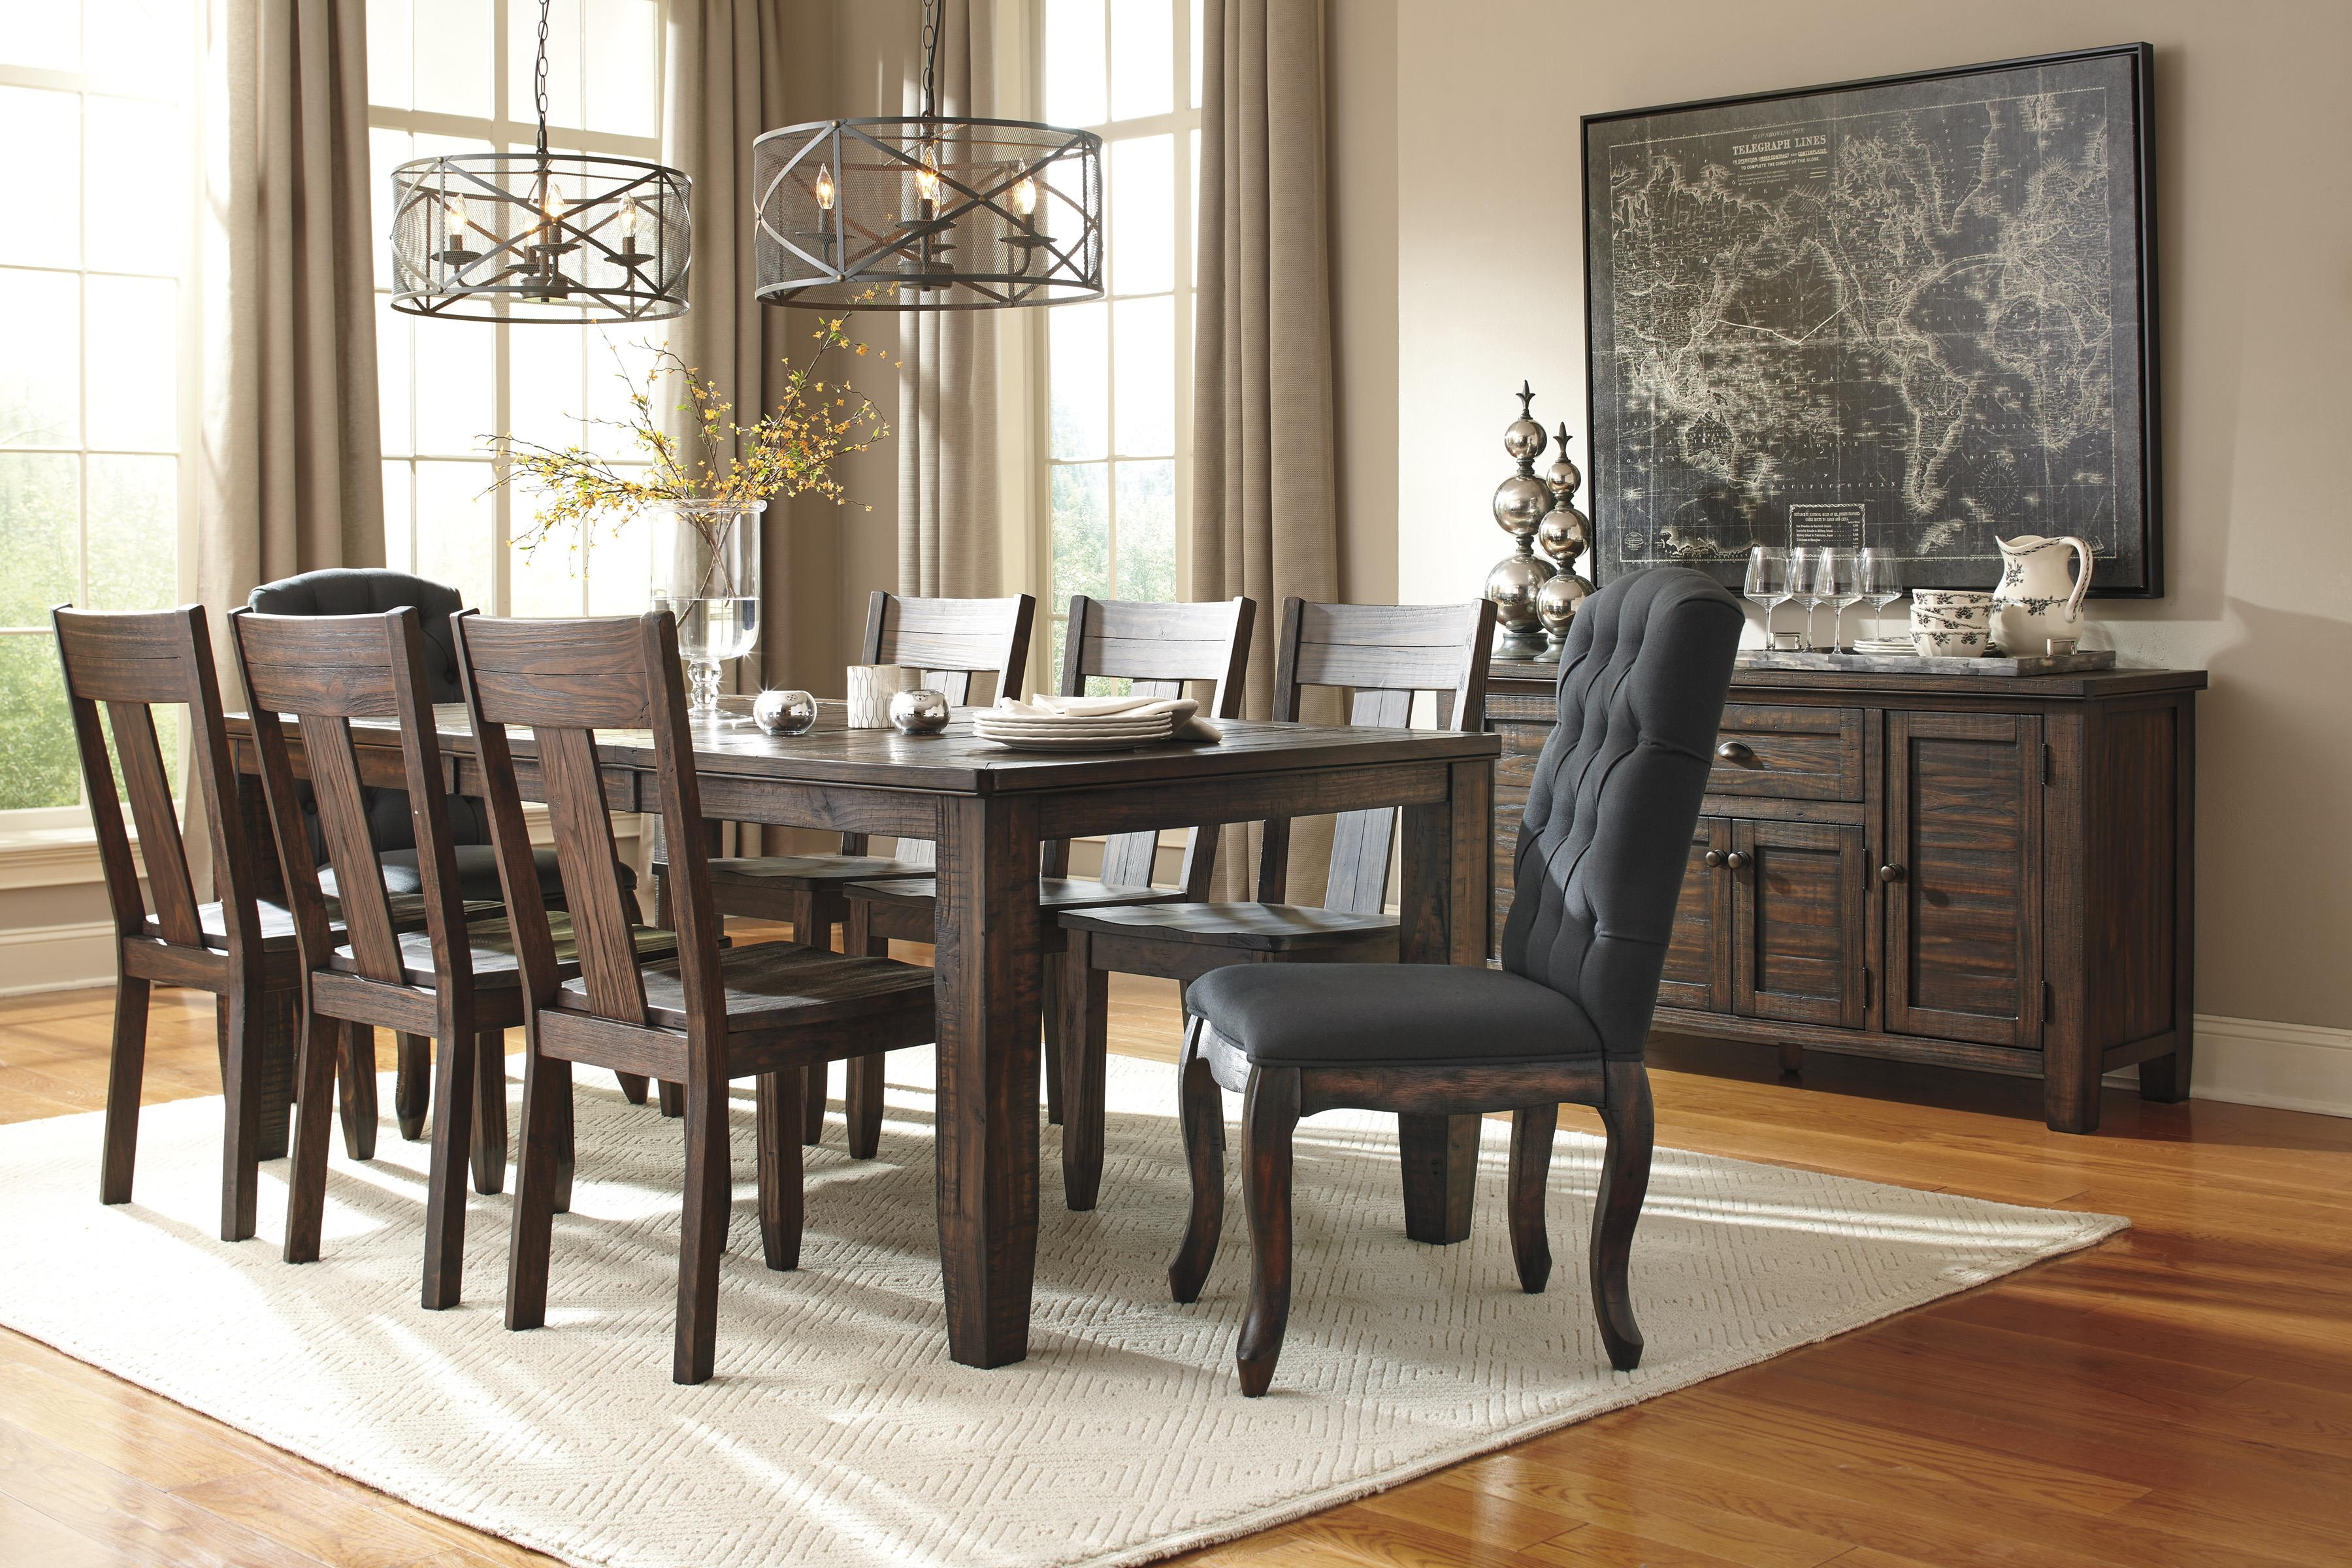 Signature Design By Ashley Trudell Formal Dining Room Group   Item Number:  D658 Dining Room